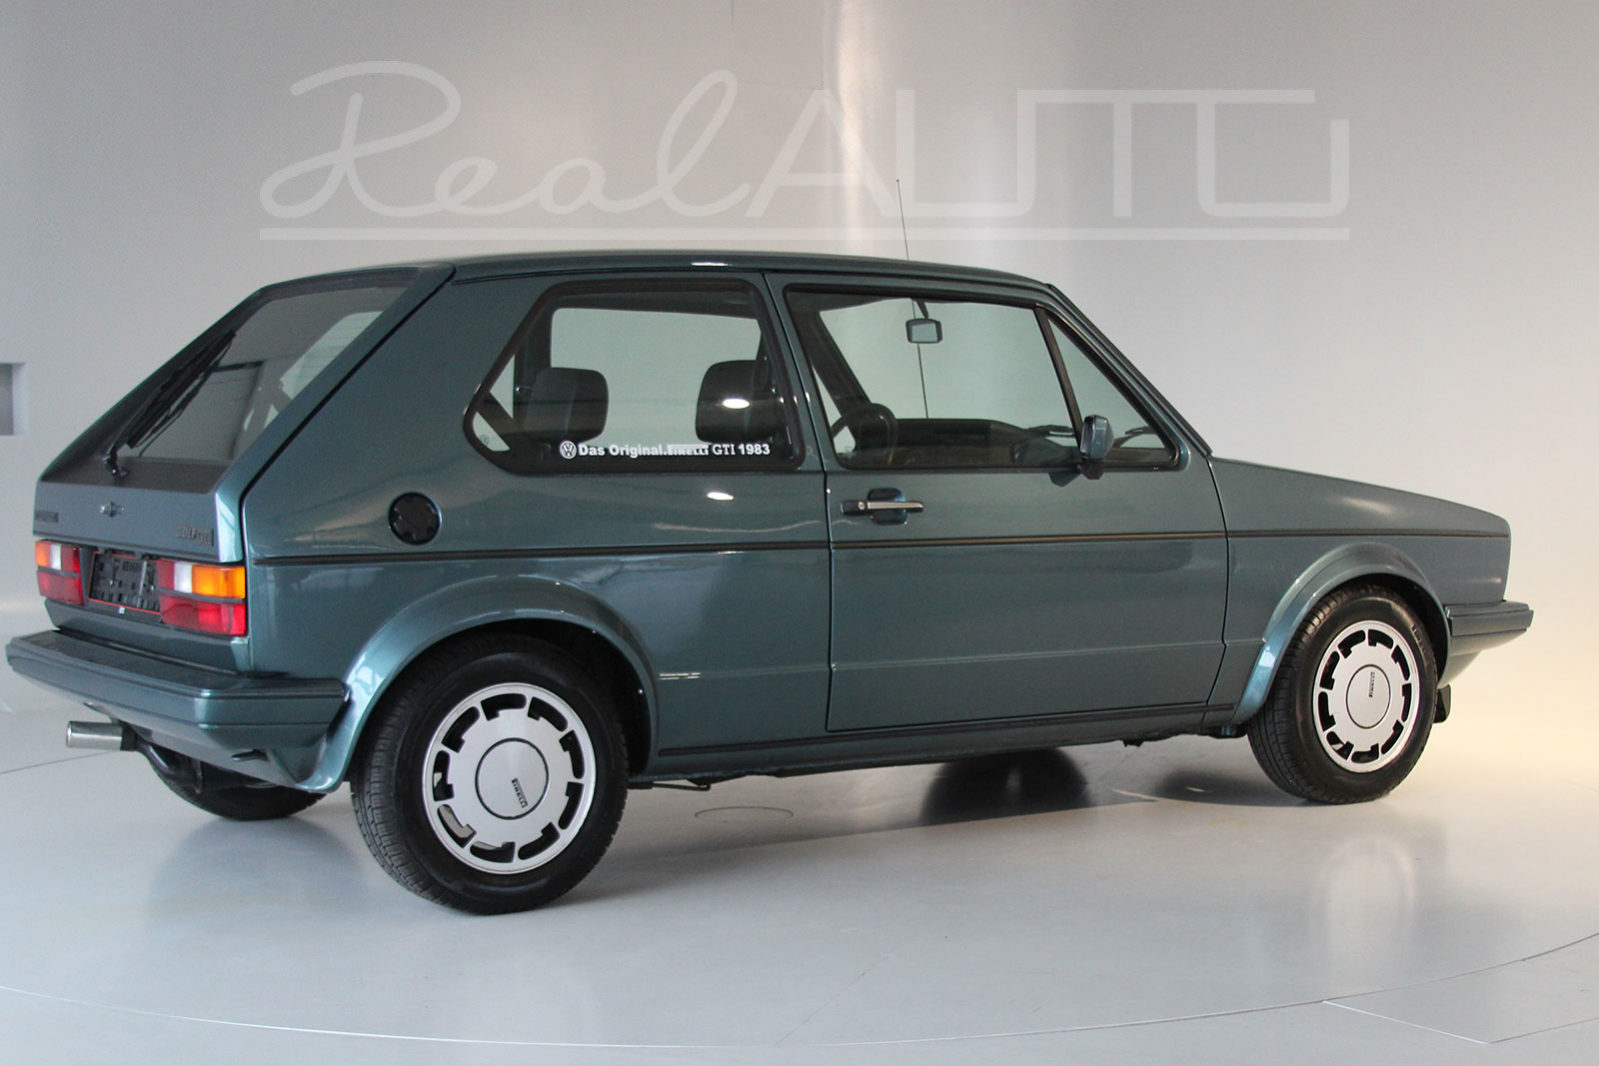 Volkswagen Golf Gti Pirelli Ein Originaler Real Auto The